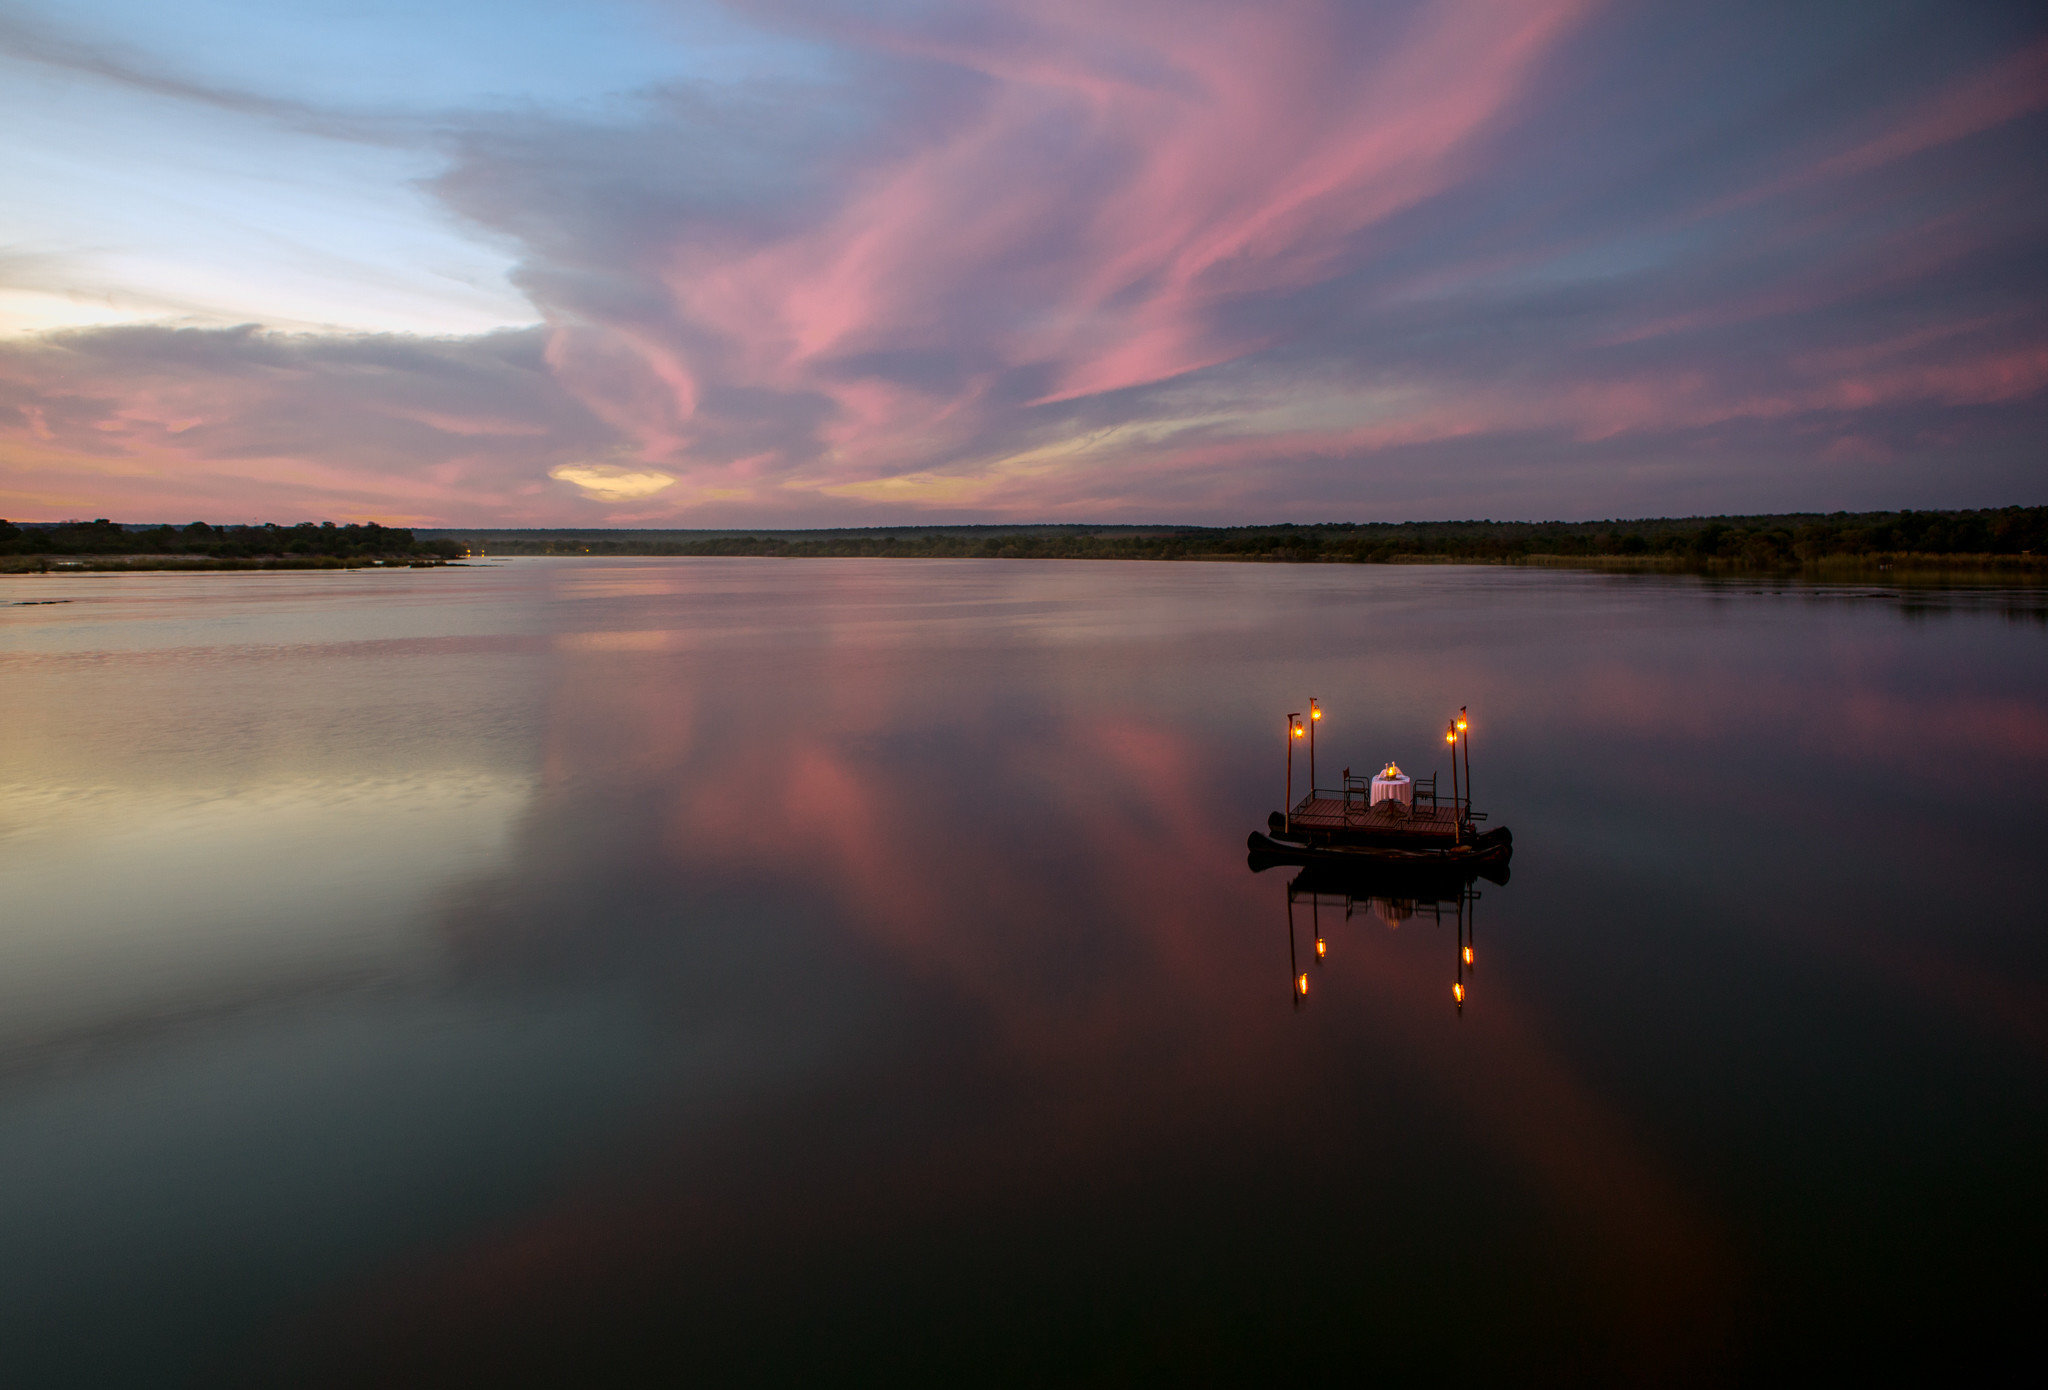 water sky Boat Nature horizon calm Sunset cloud sunrise dawn dusk atmosphere evening loch afterglow morning Lake River reservoir shore Sea landscape sunlight clouds red sky at morning meteorological phenomenon traveling distance